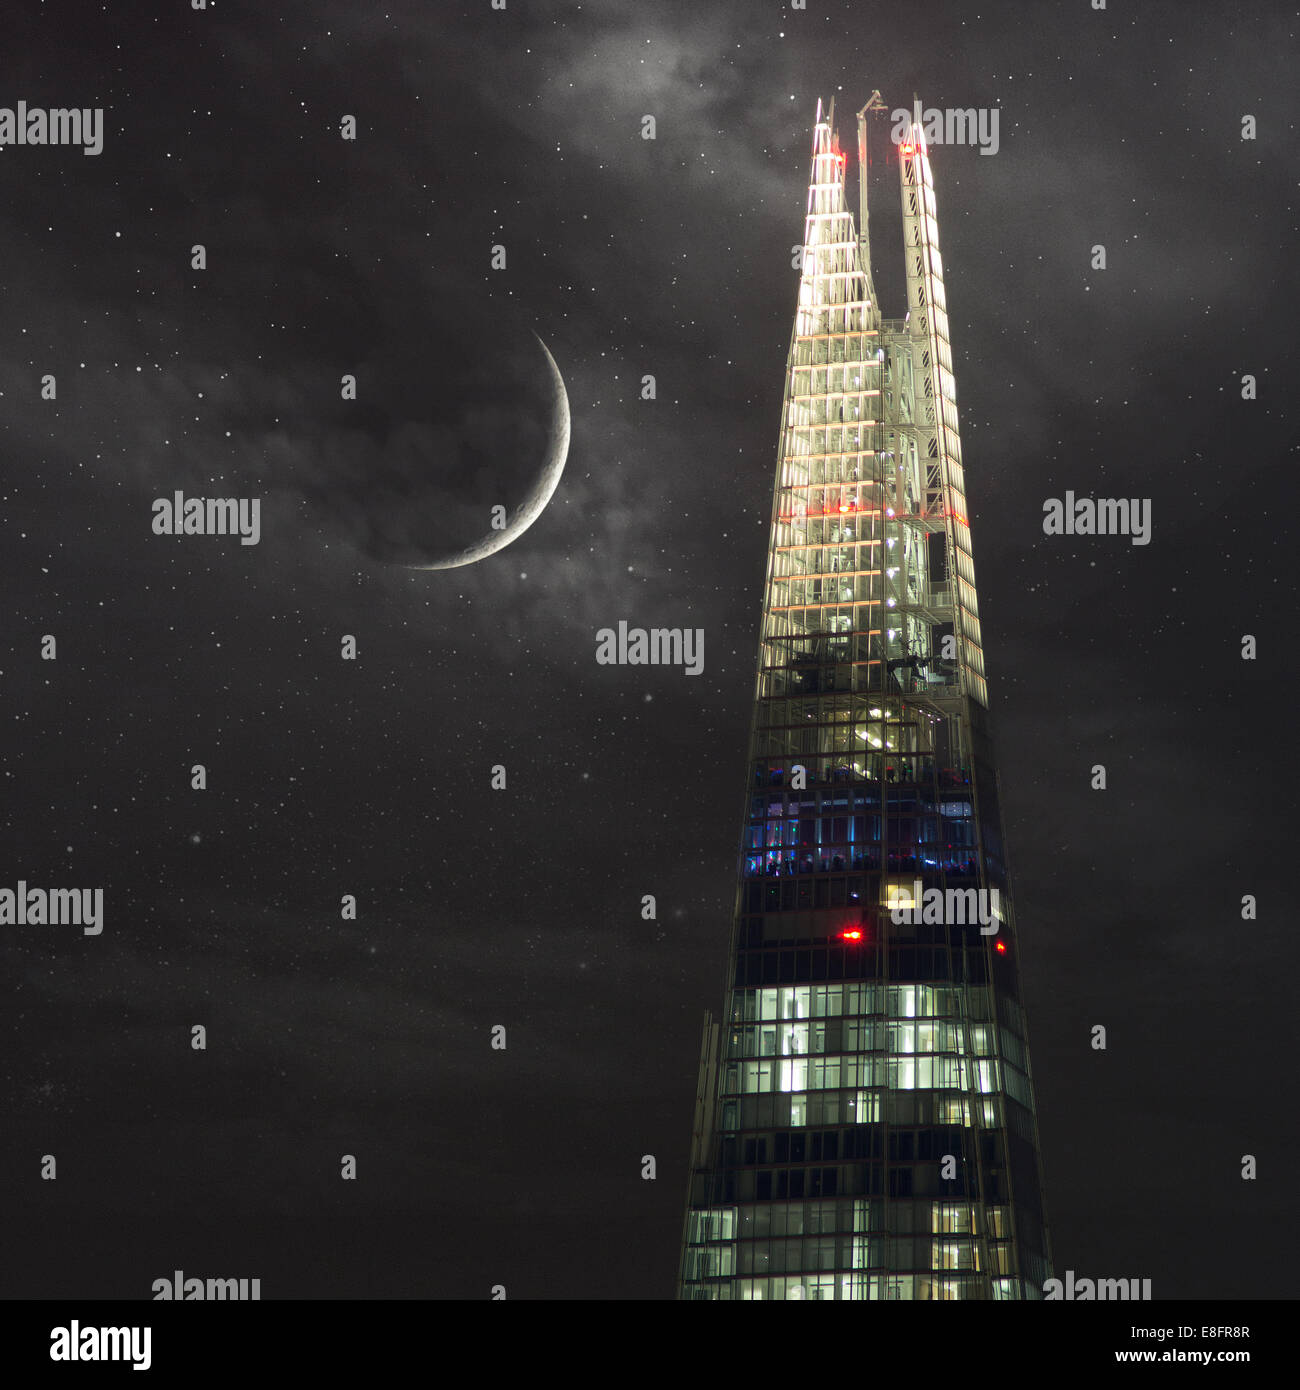 United Kingdom, London, Shard at night - Stock Image